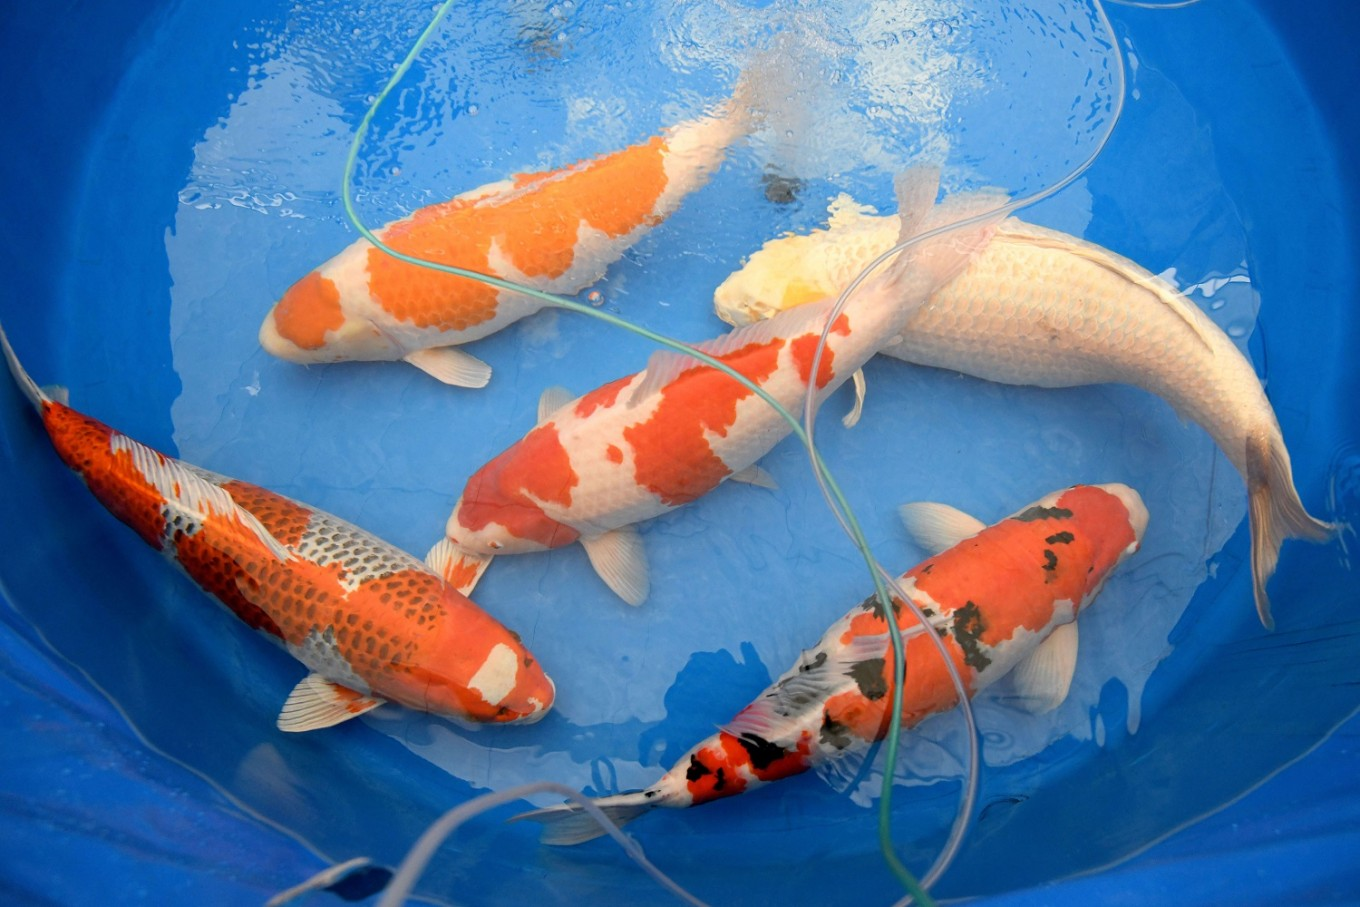 Koi story priceless japanese fish make a splash for Mini carpe koi